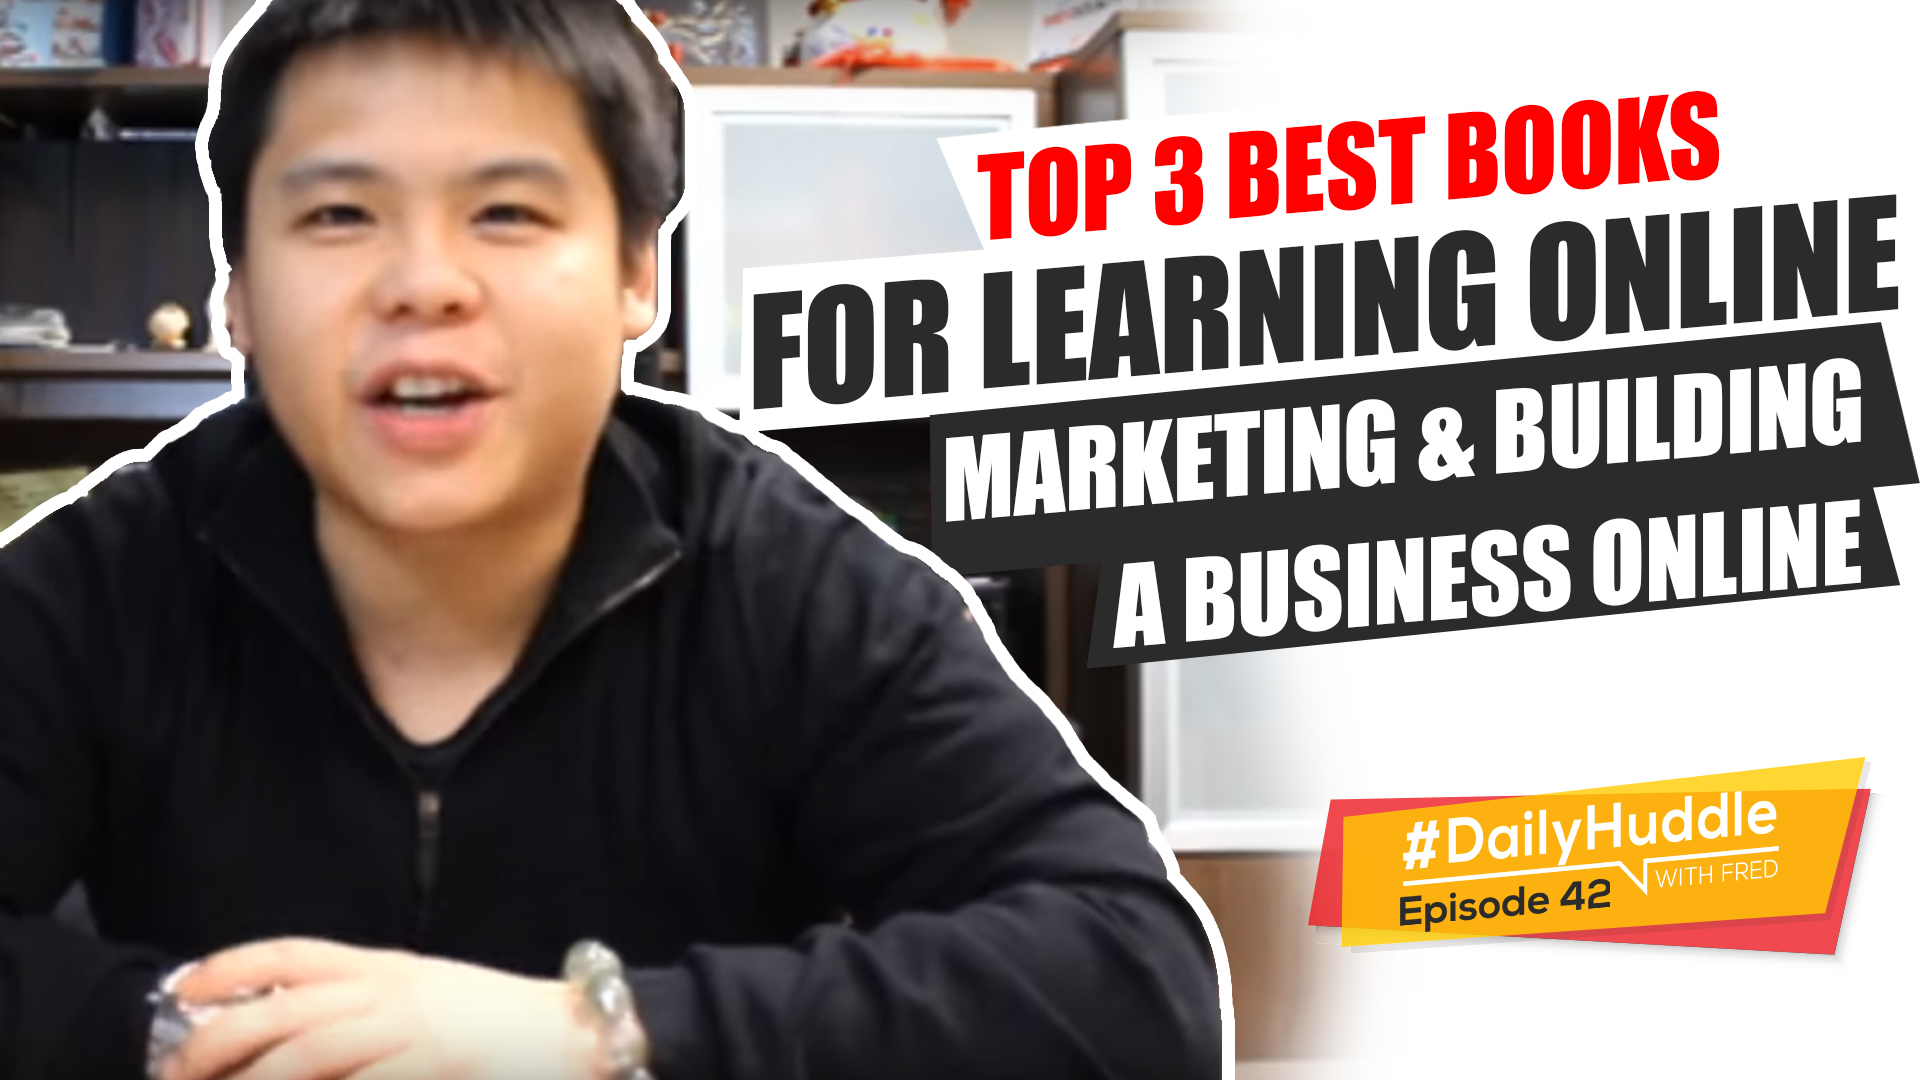 Daily Huddle - Ep 42 | TOP 3 Best Books For Learning Online Marketing & Building A Business Online